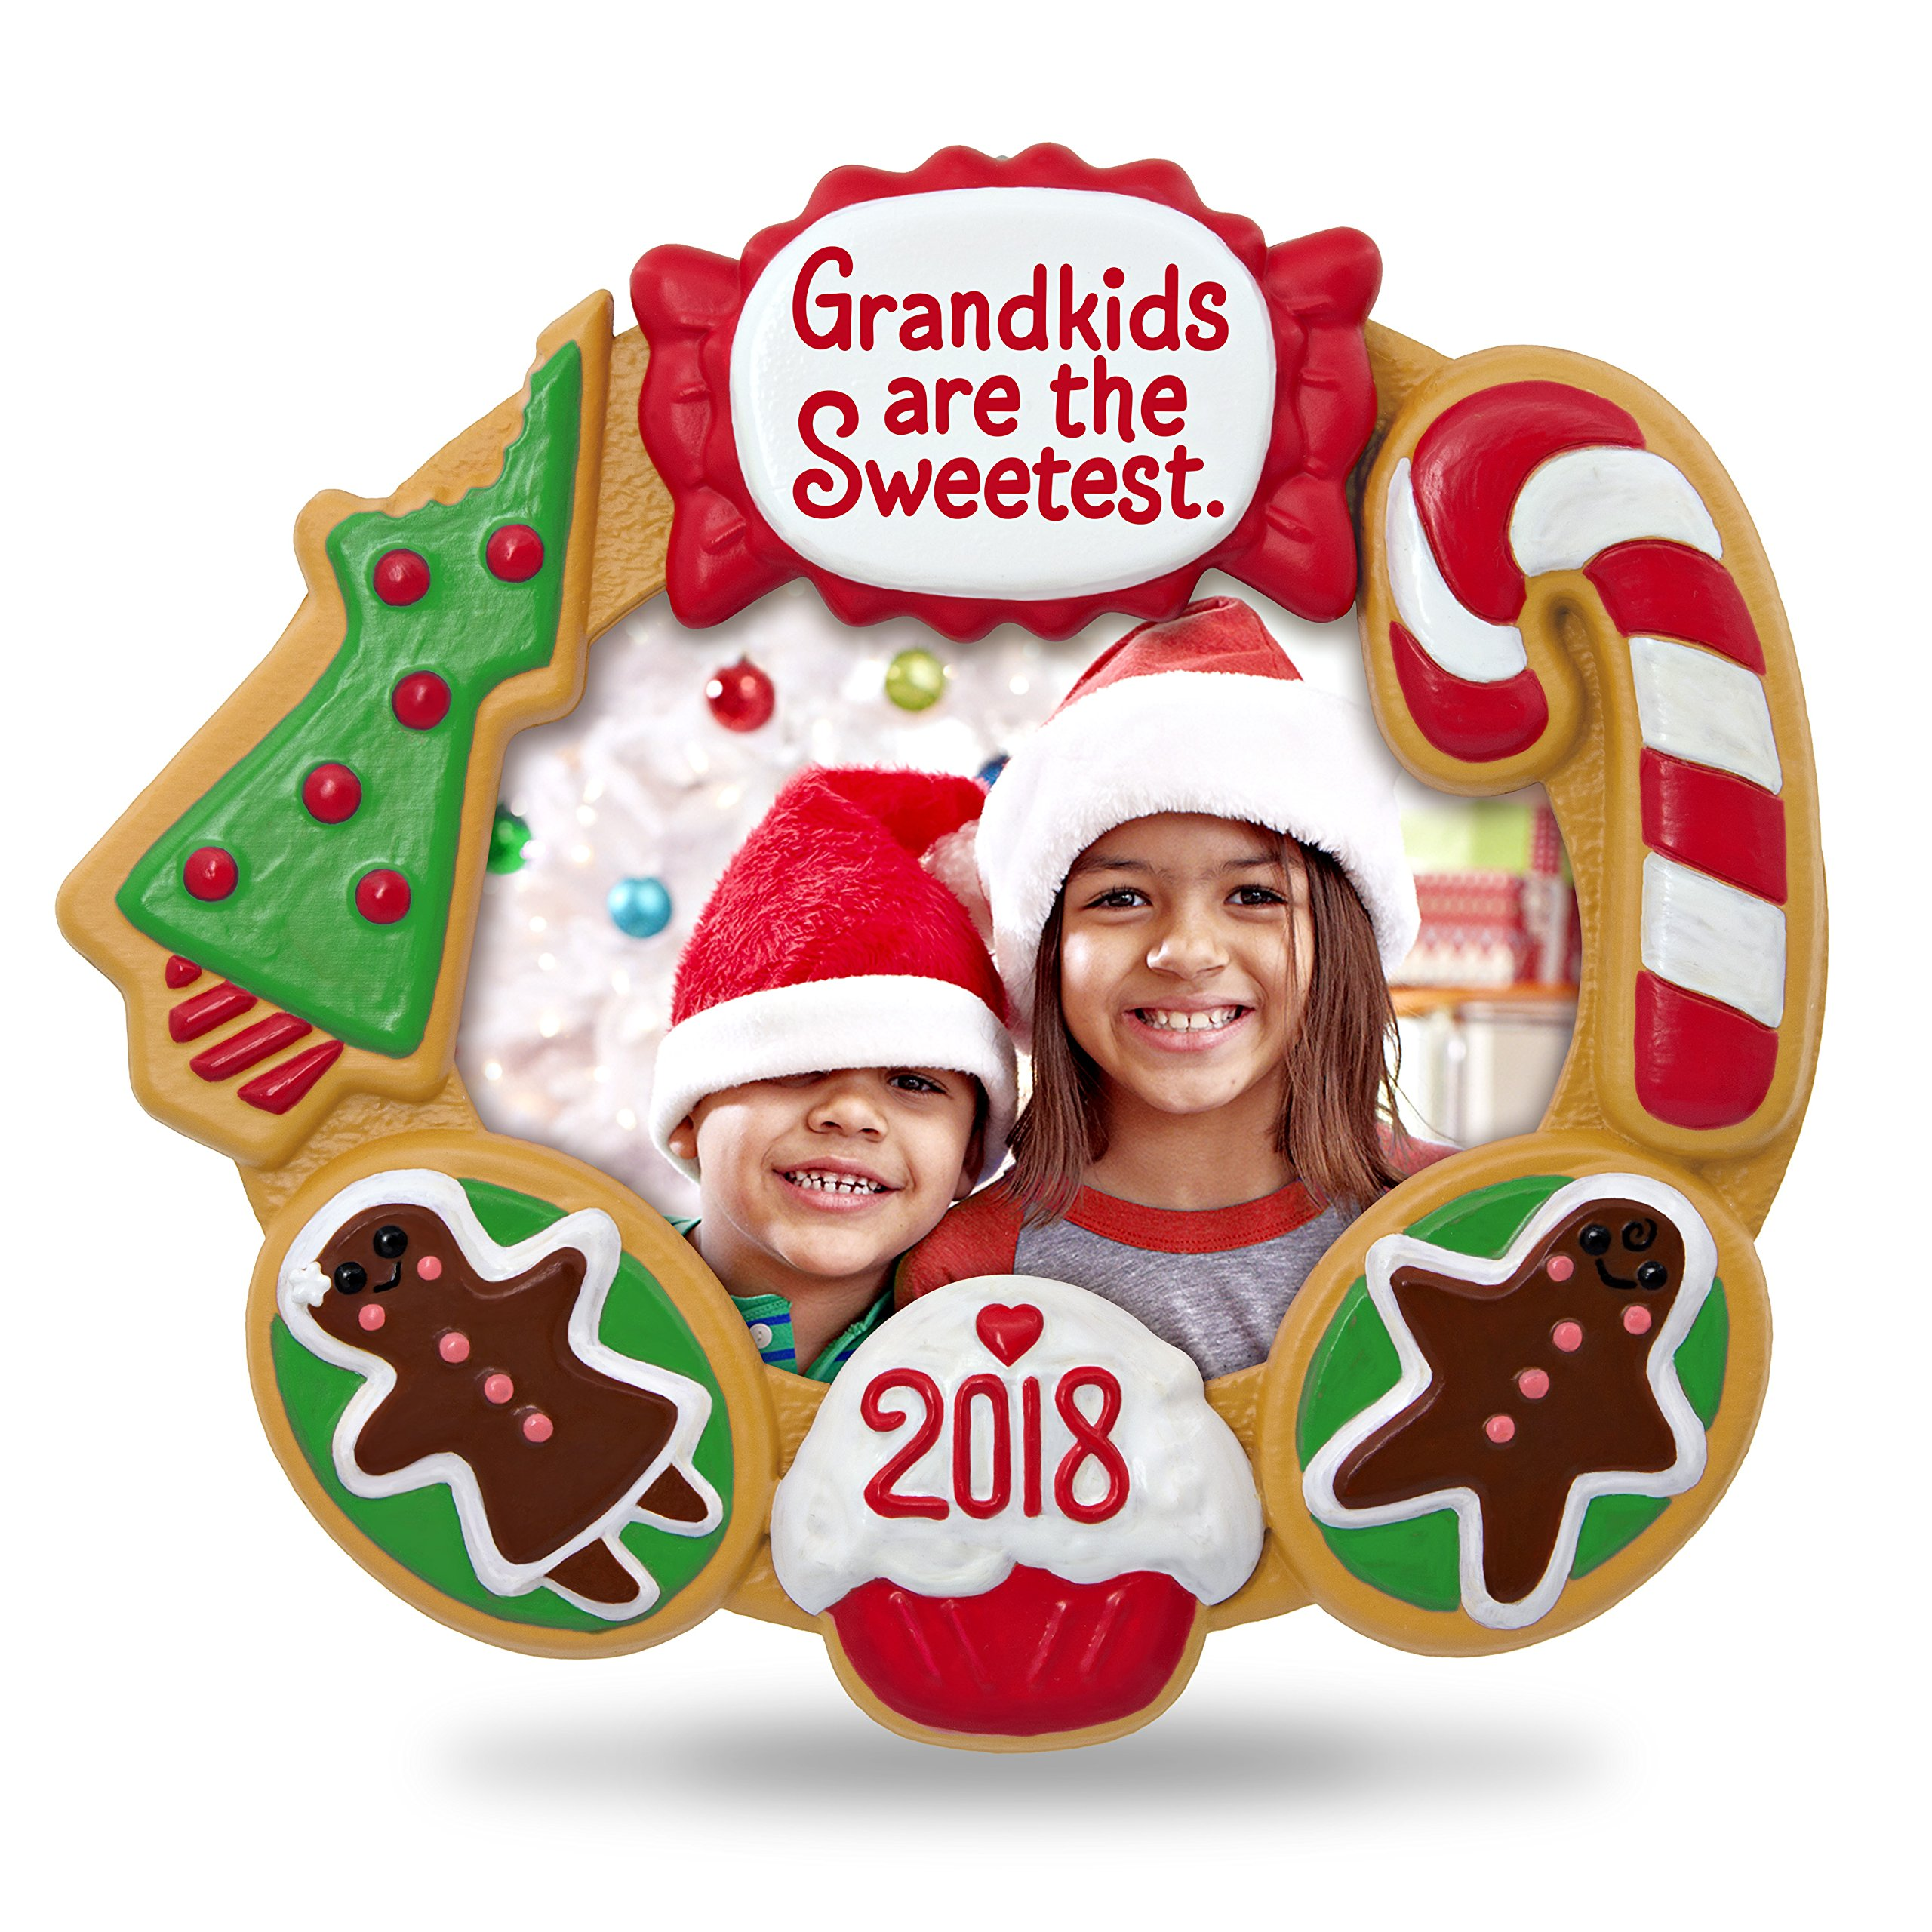 Hallmark Keepsake Christmas Ornament 2018 Year Dated, Grandkids Are the Sweetest Picture Frame, Photo Frame